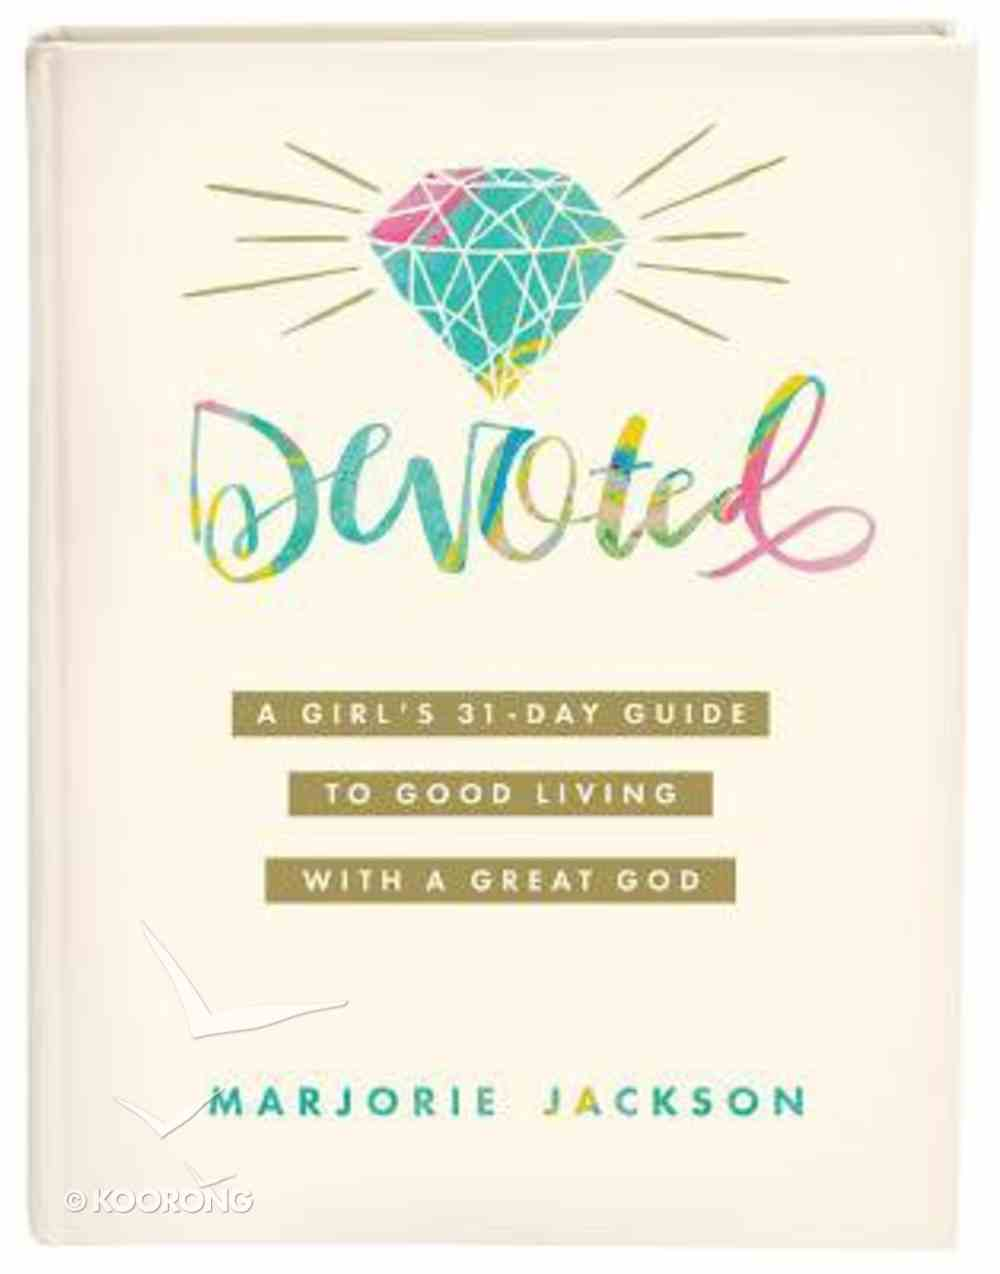 Devoted: A Girls 31-Day Guide to Good Living With a Great God Paperback